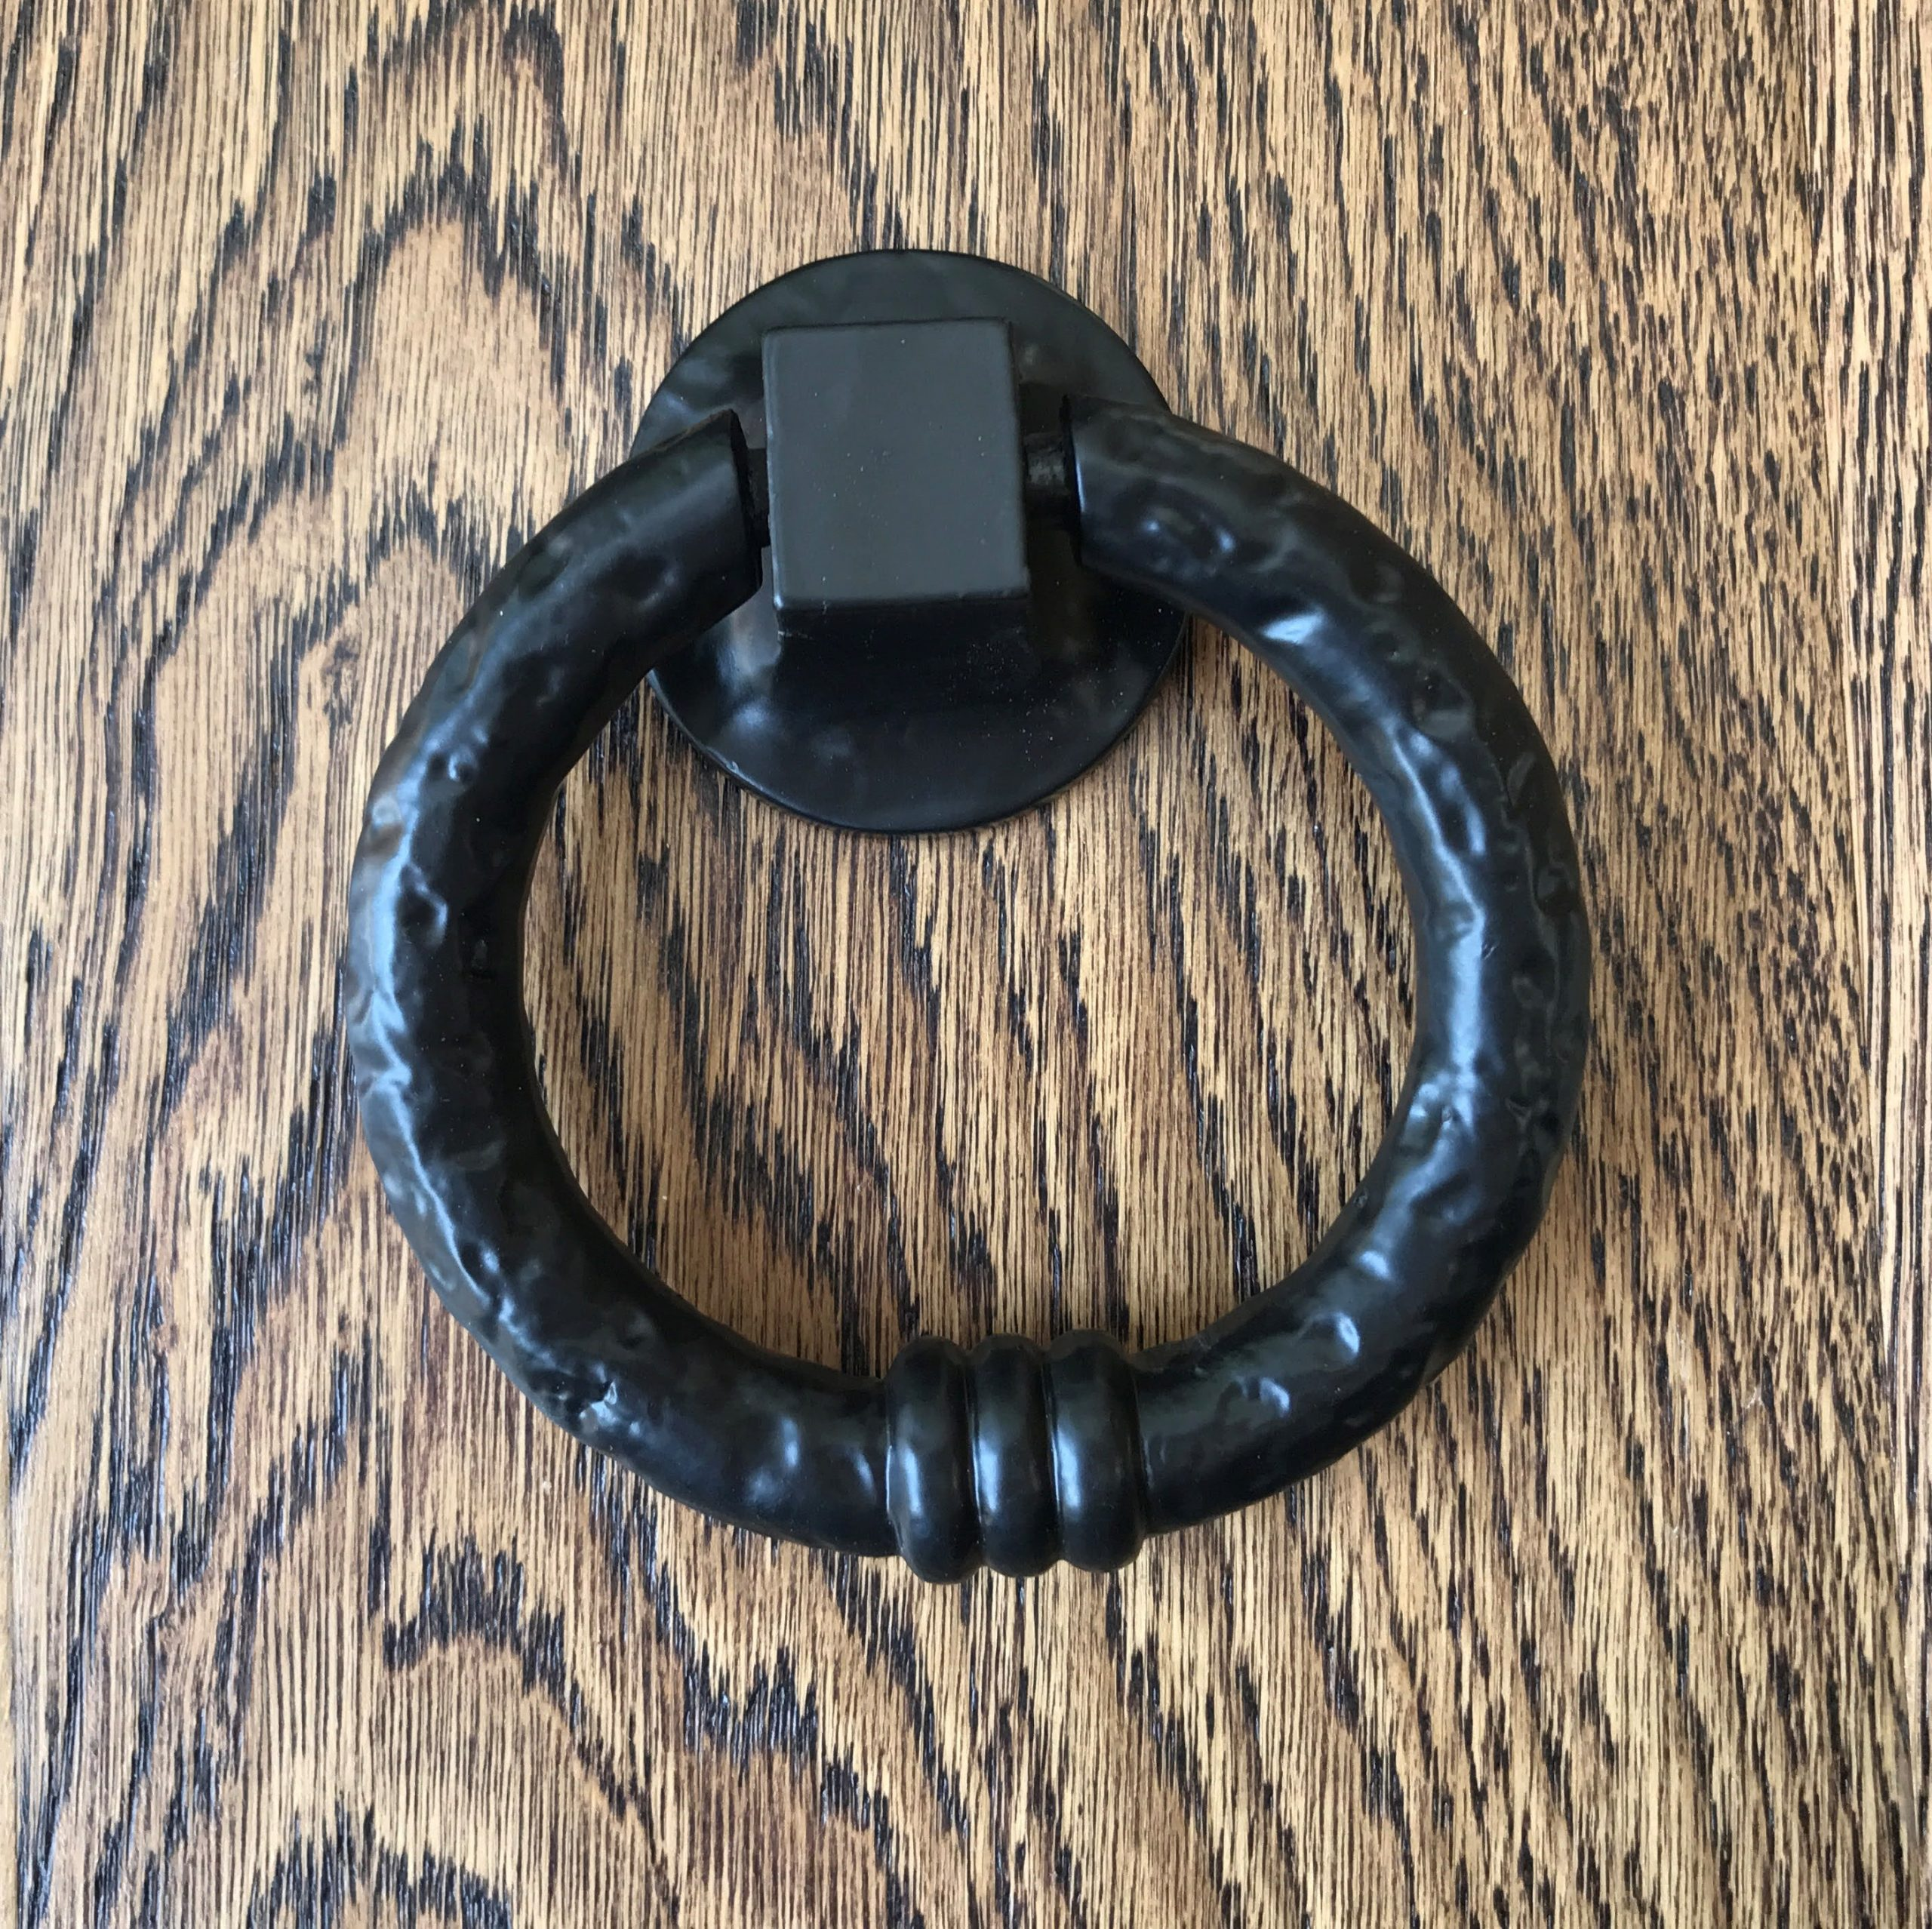 Black Cast Iron Ring Style Door Knocker